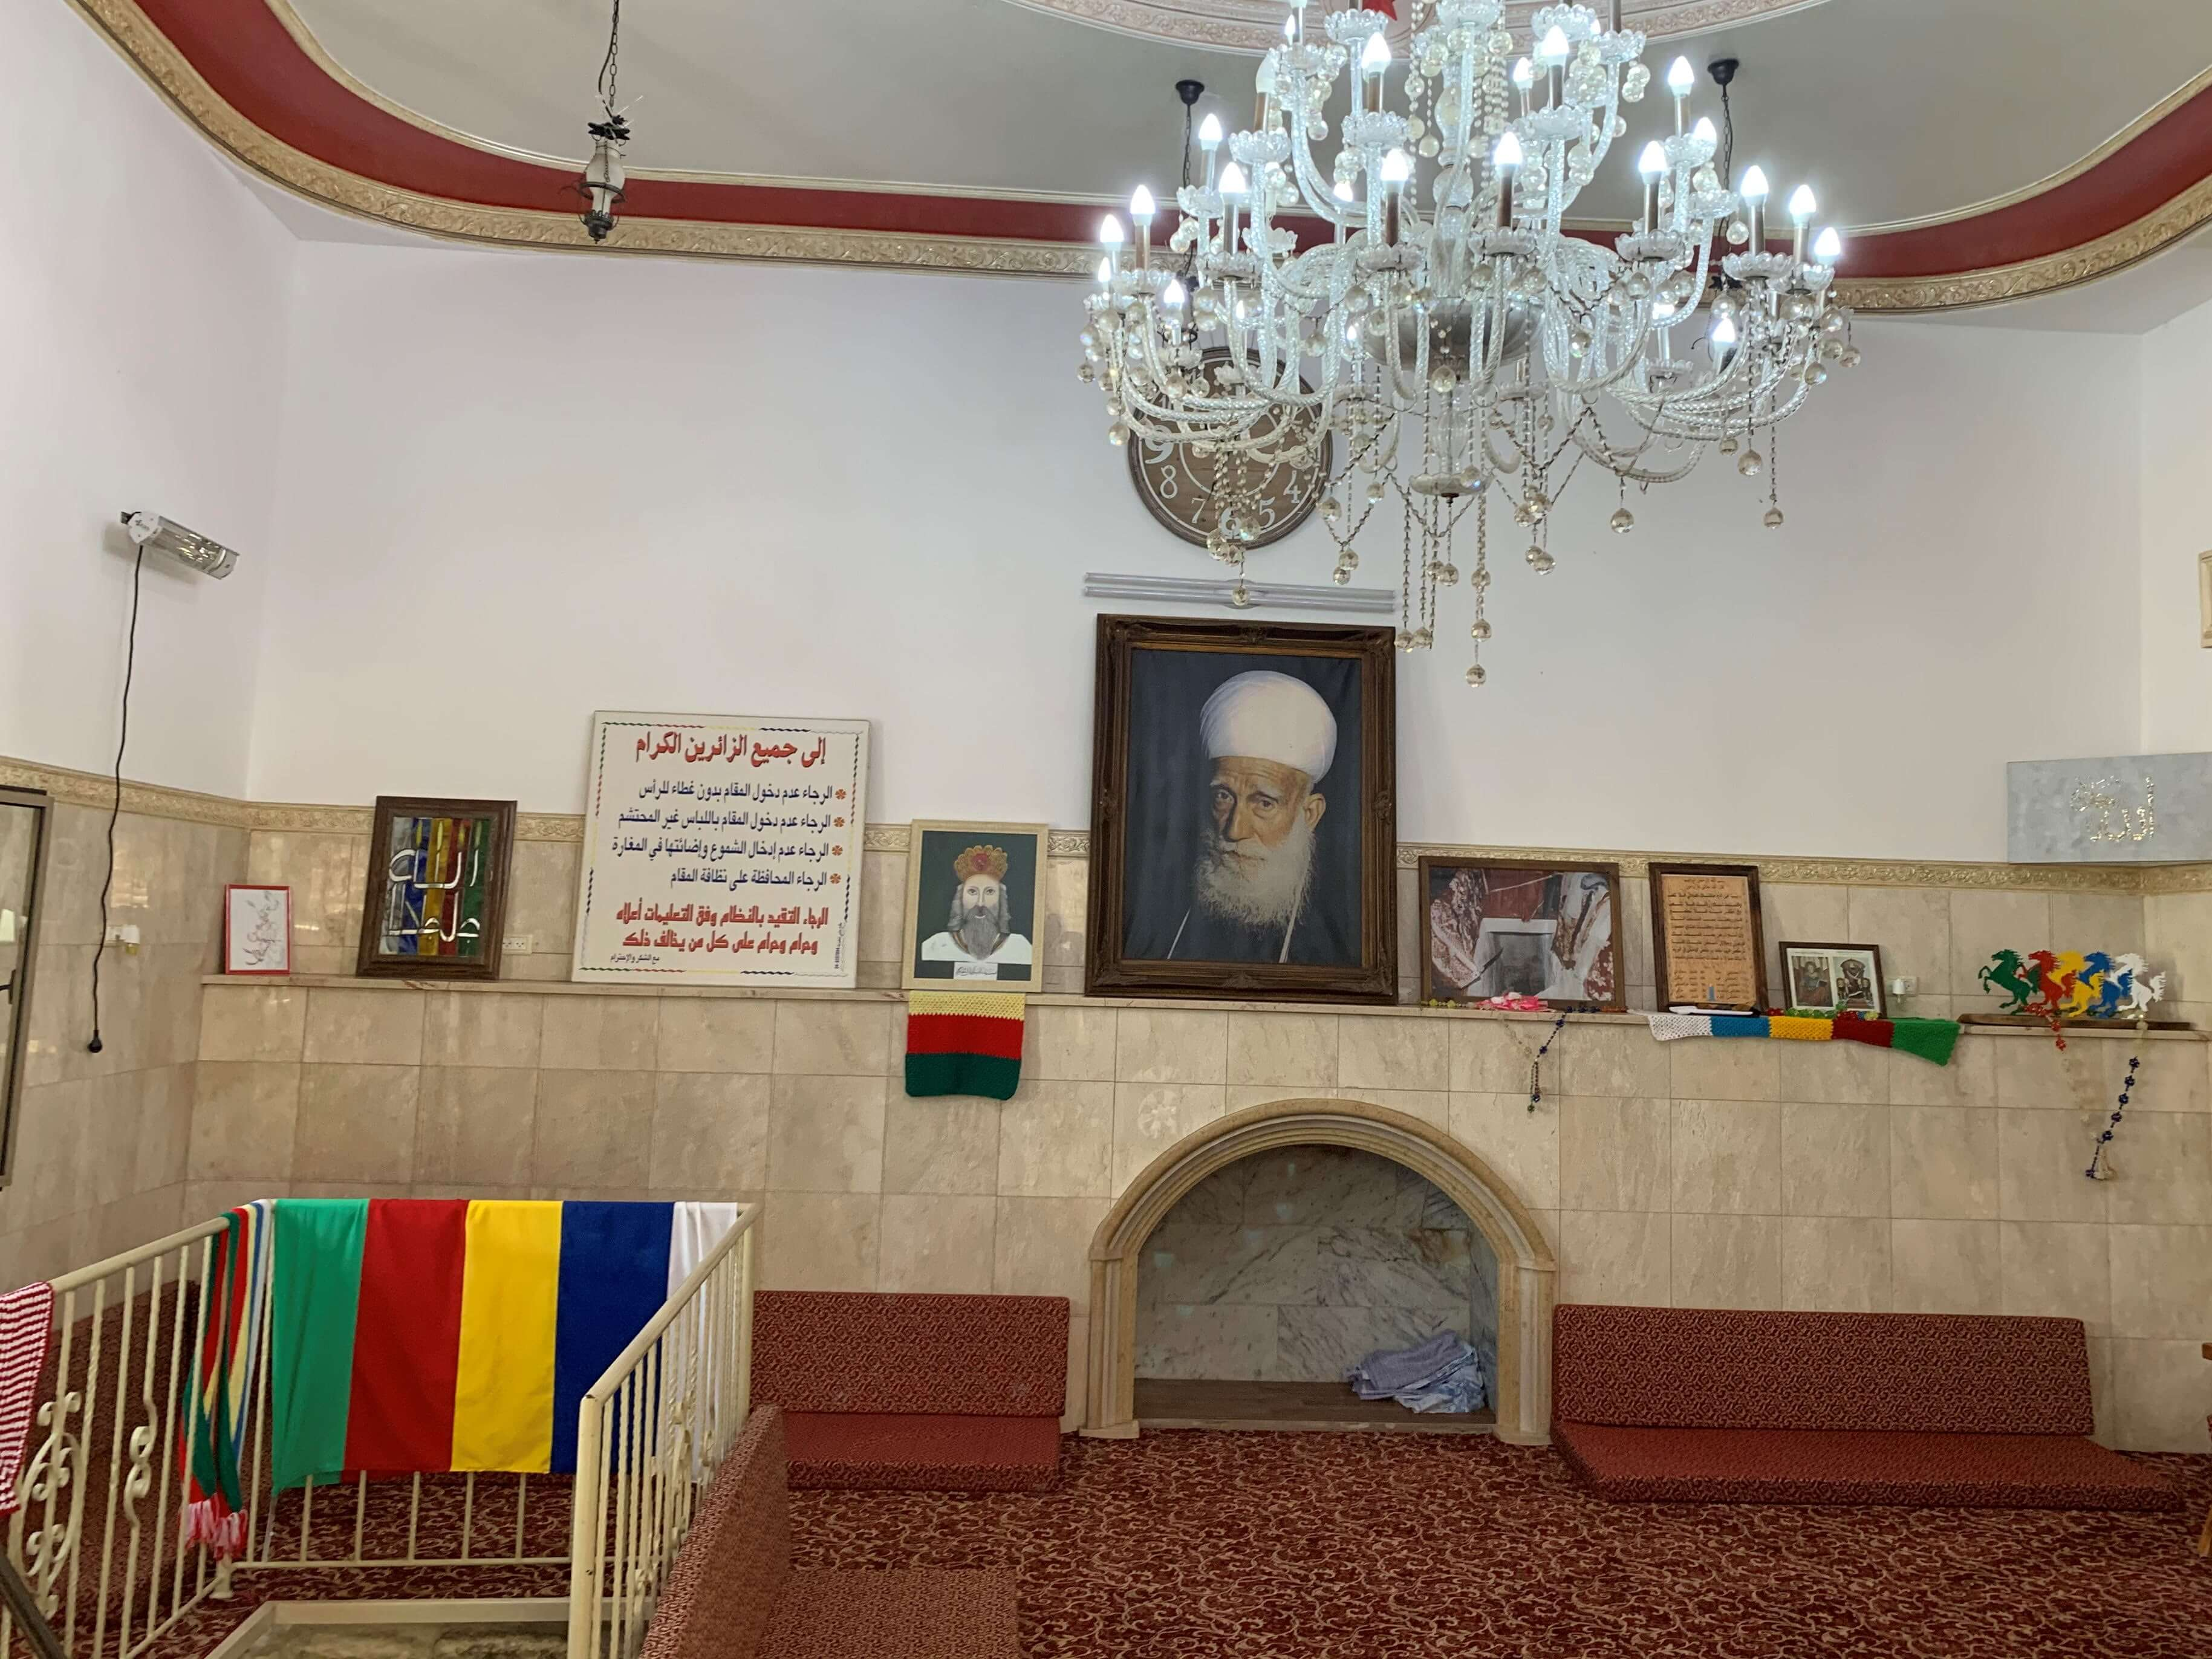 Hilve, the Druze prayer place